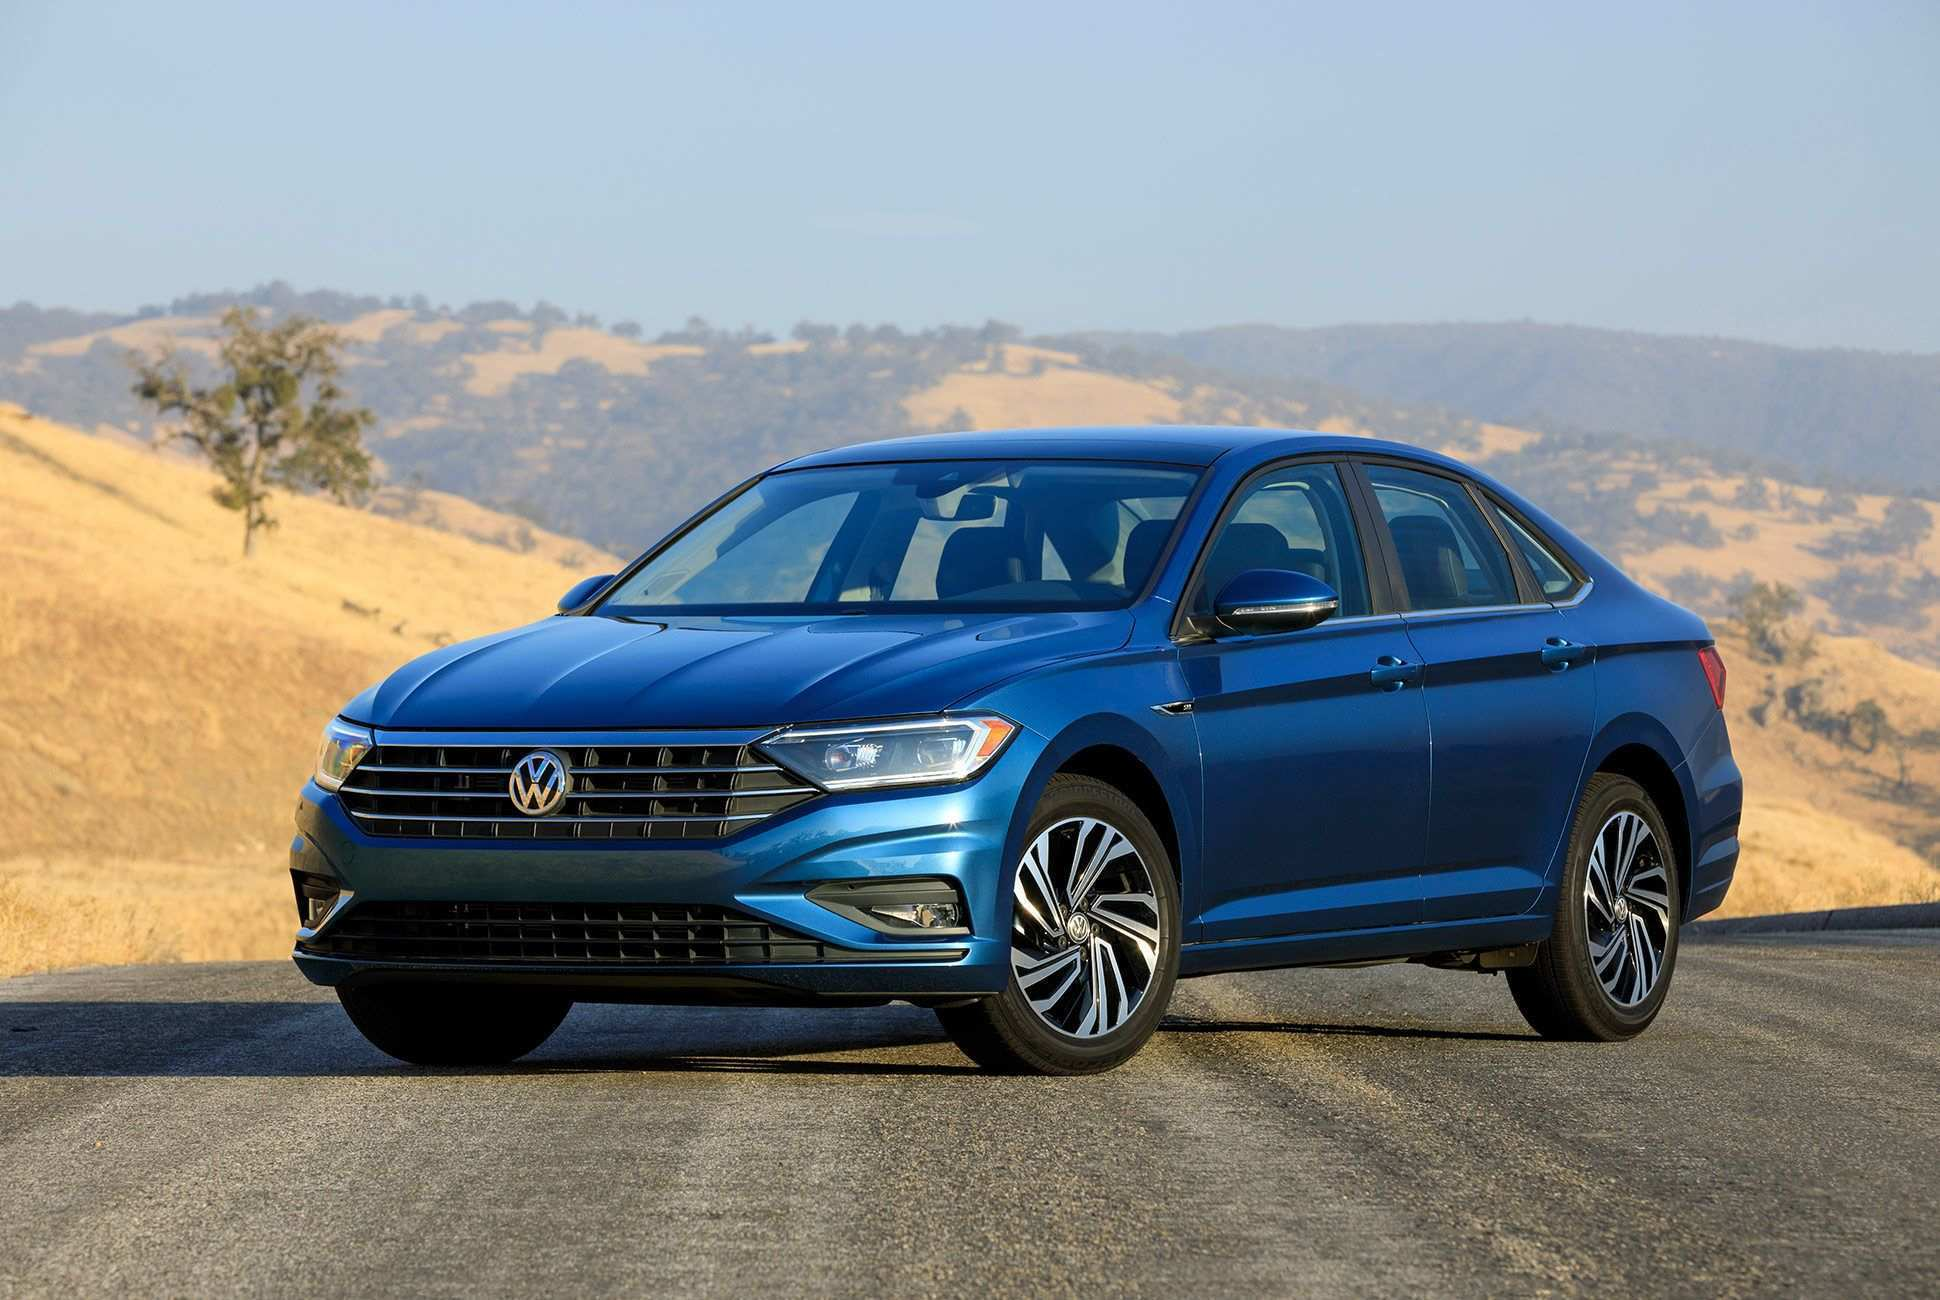 25 Concept of Best Volkswagen Lineup 2019 Review And Release Date Redesign and Concept by Best Volkswagen Lineup 2019 Review And Release Date